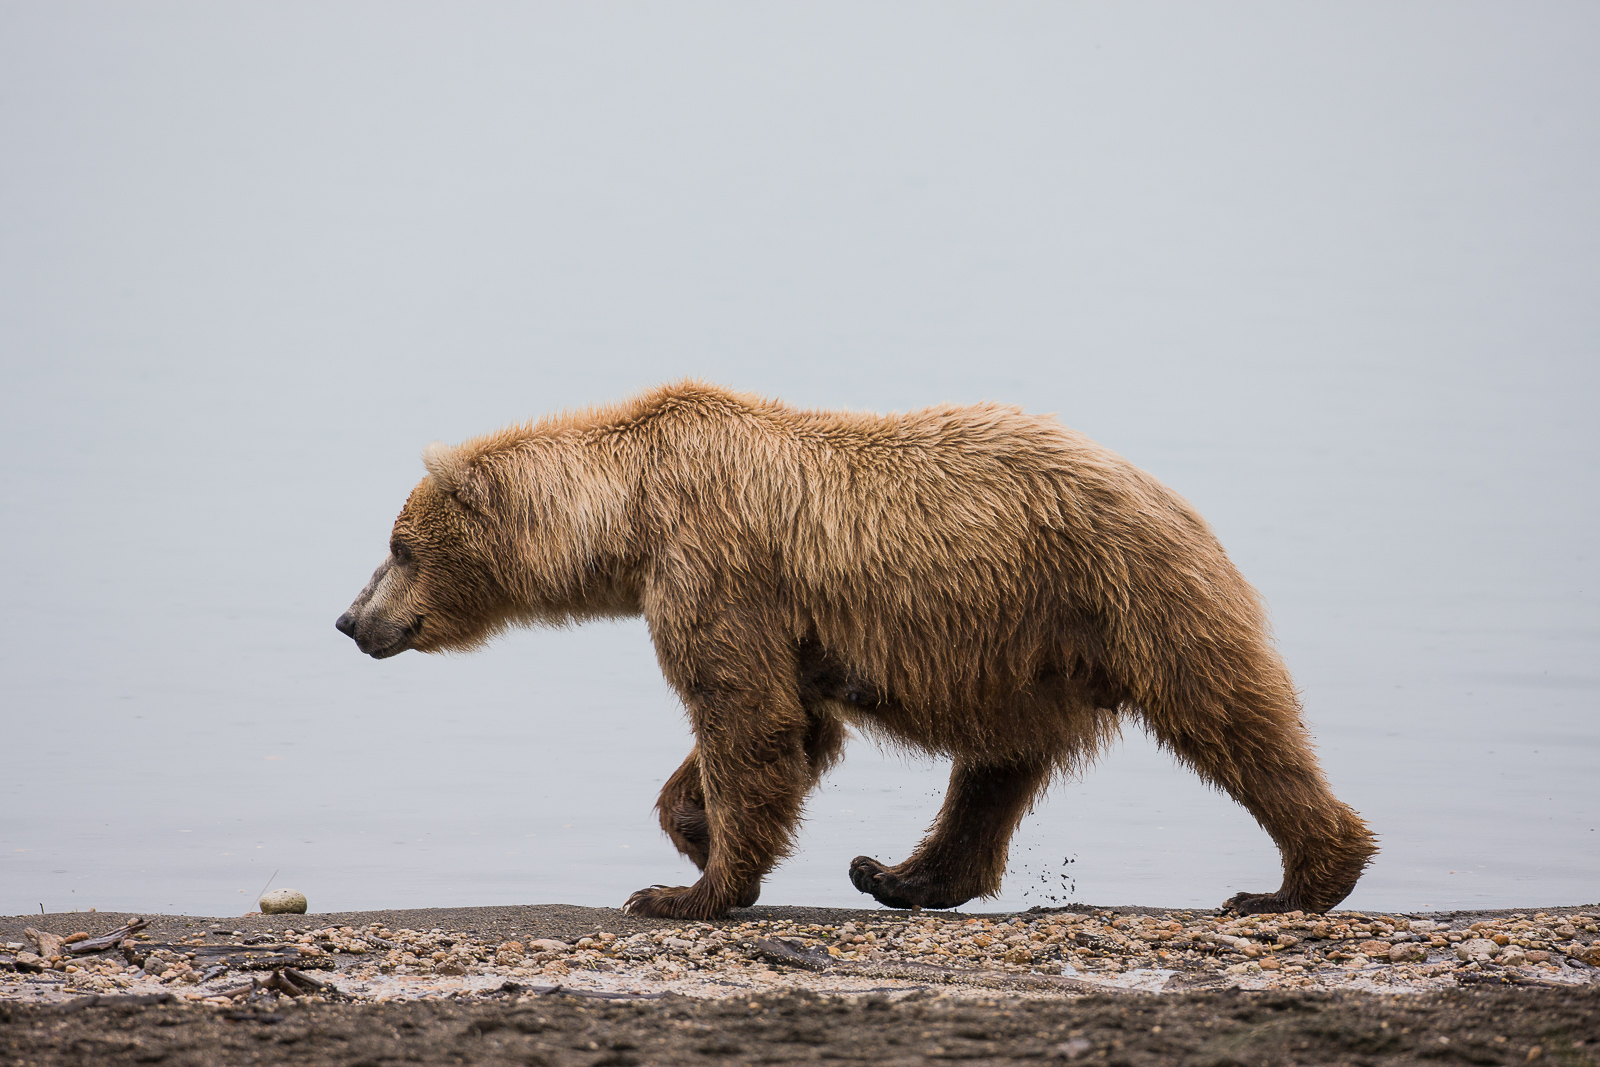 Doing the Rounds,Katmai National Park, Alaska,Salmon,Shoreline, bear, grizzly, photo